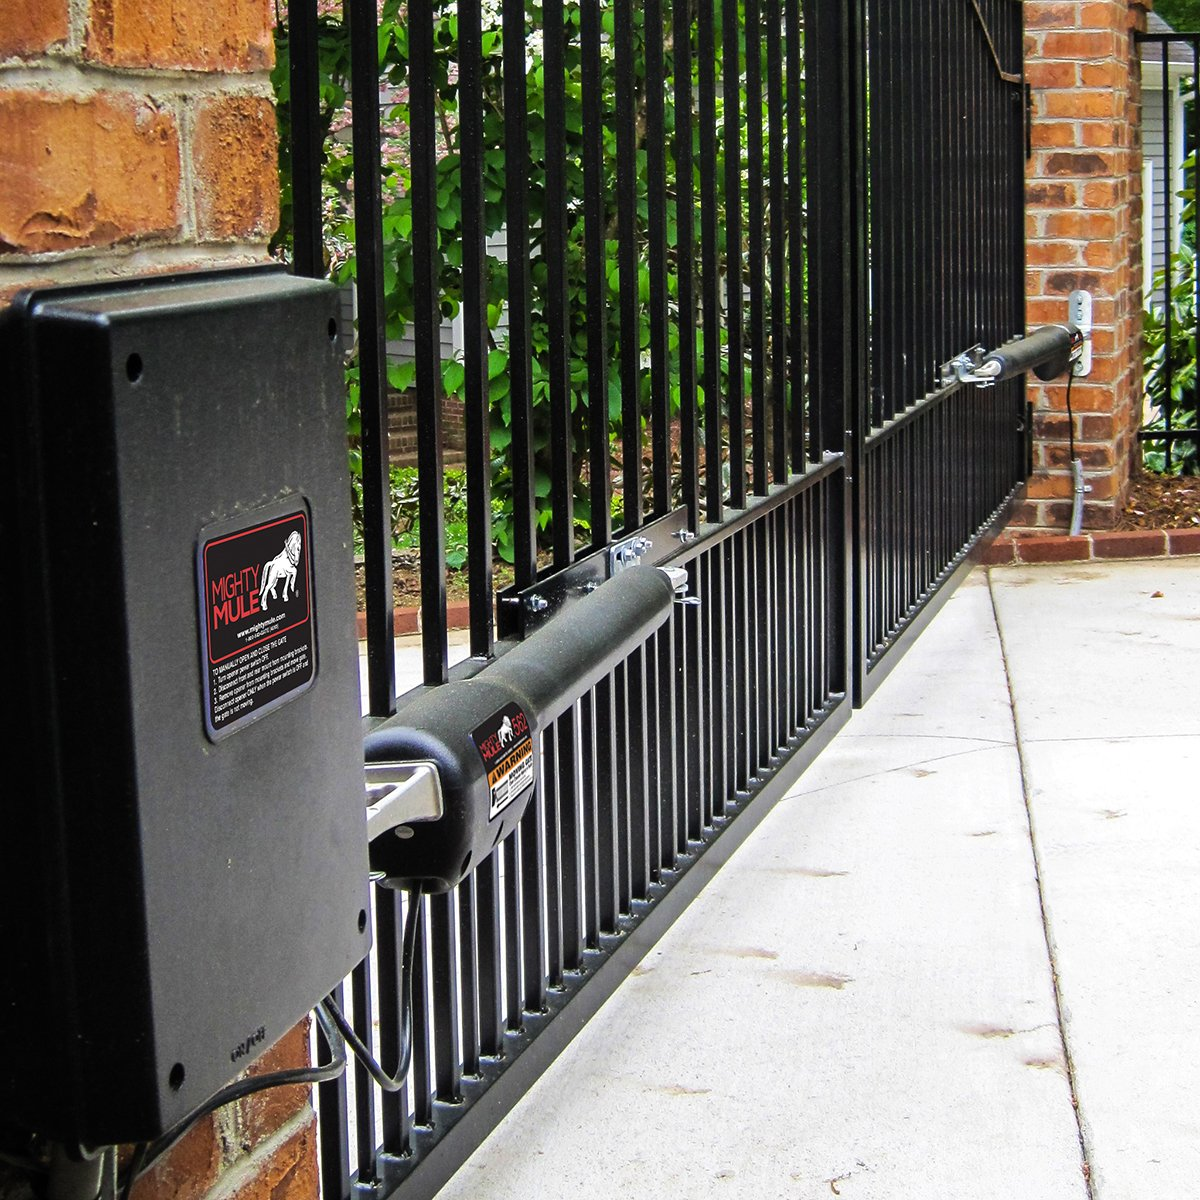 Mighty Mule MM562 Automatic Gate Opener for Heavy Duty Dual Swing Gates for 18' Long or 850 lb by Mighty Mule (Image #4)